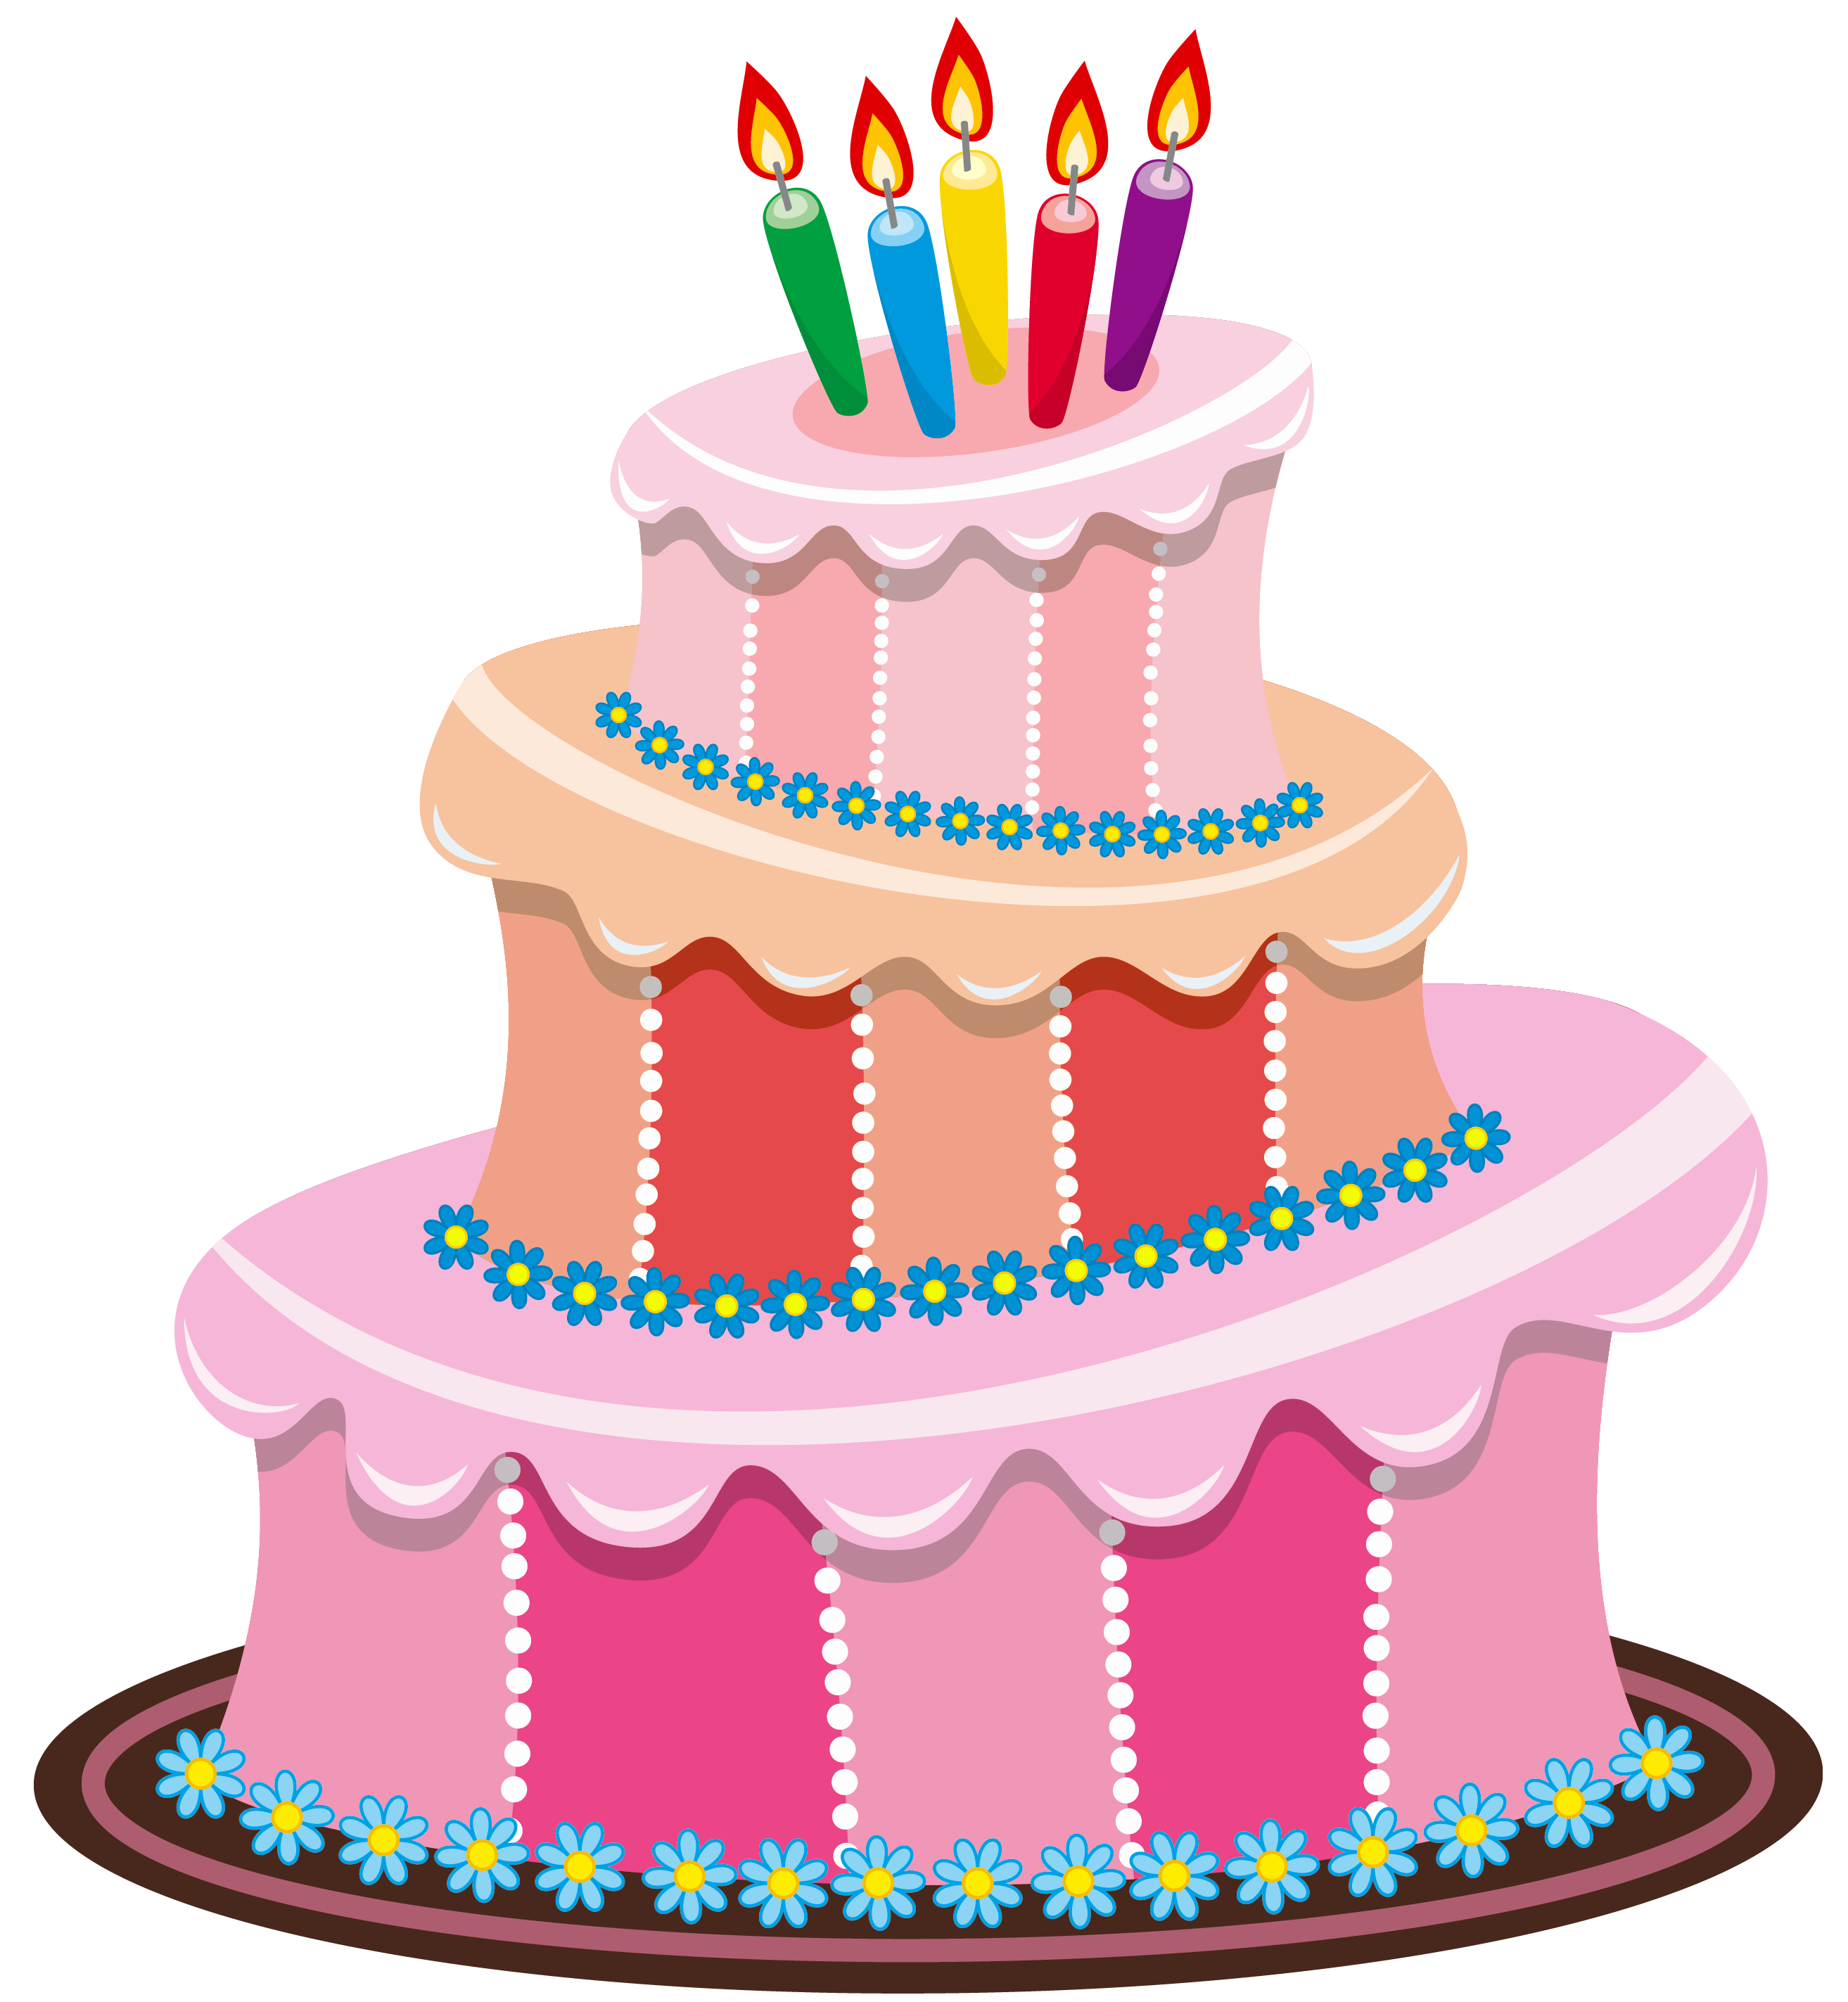 Birthday cake on skateboard clipart image stock Free Images Of Cakes, Download Free Clip Art, Free Clip Art on ... image stock